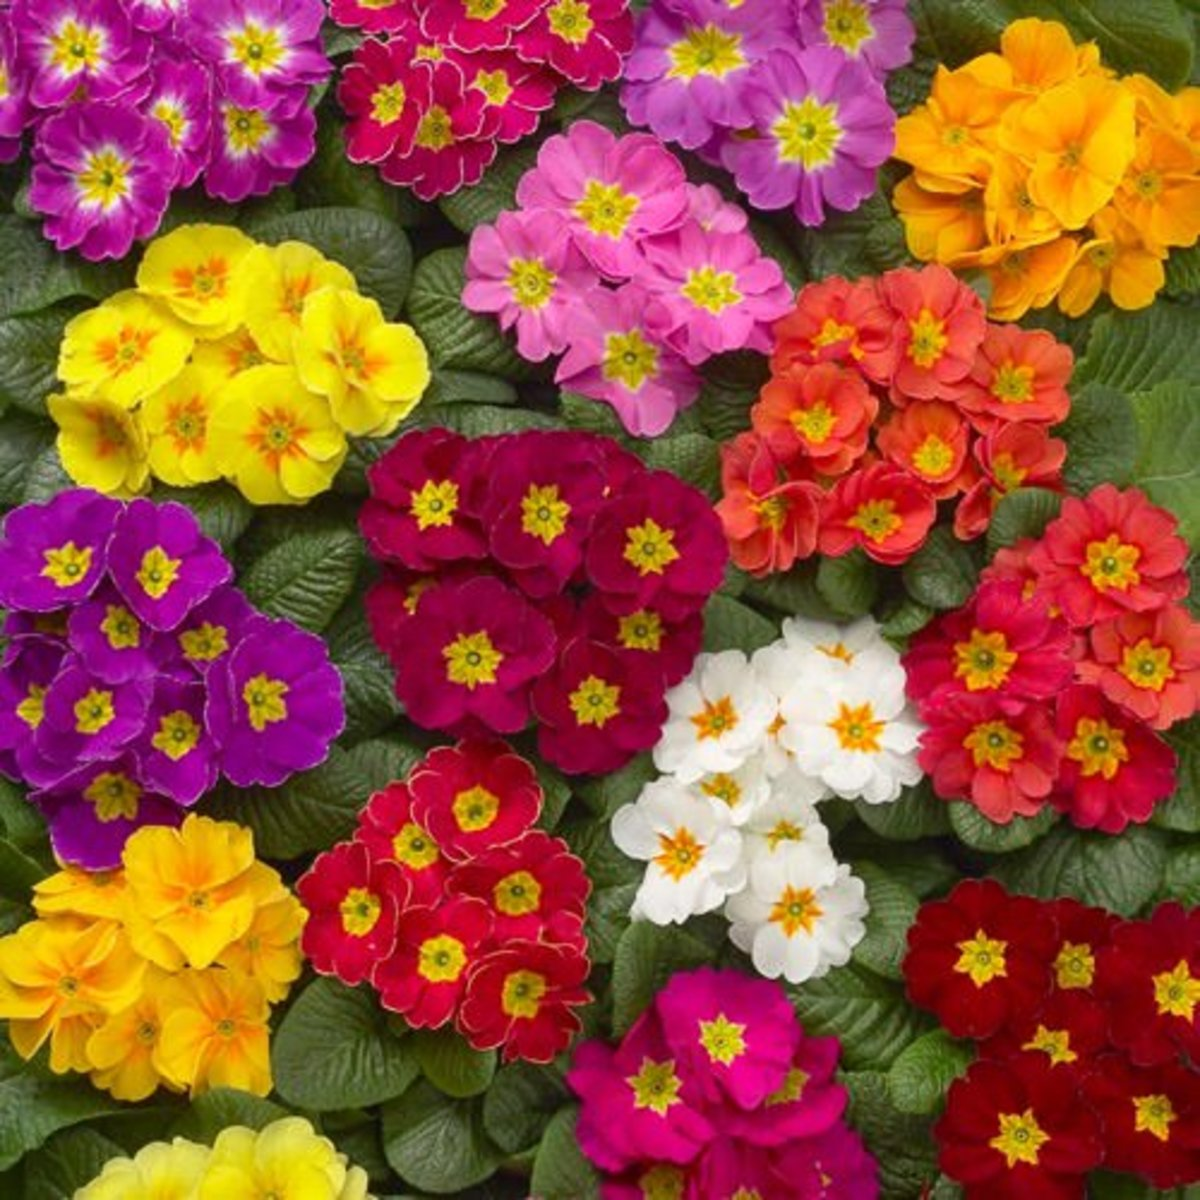 You can grow primroses in just about any color you want.